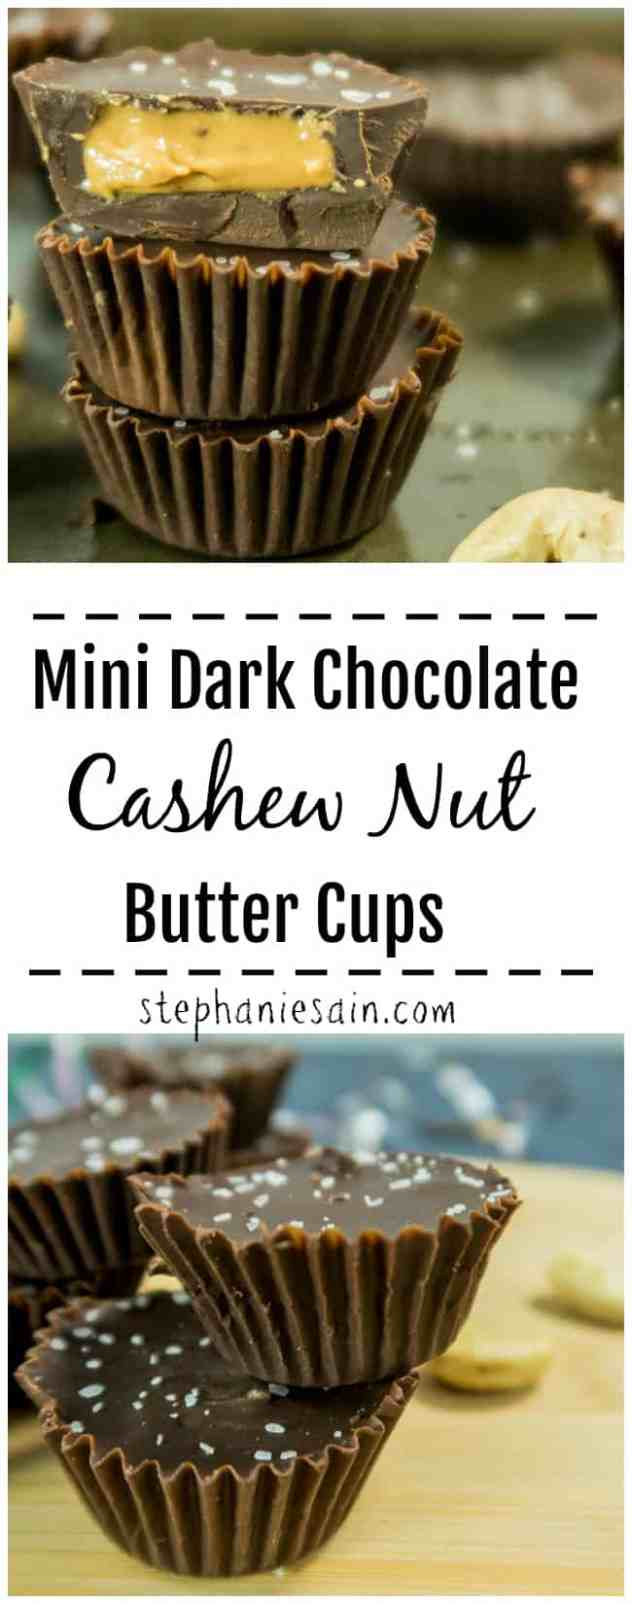 These Mini Dark Chocolate Cashew Nut Butter Cups are the perfect little tasty, healthy guilt-free treat or snack. They come together super quickly with only 4 ingredients. Paleo friendly & Gluten Free.